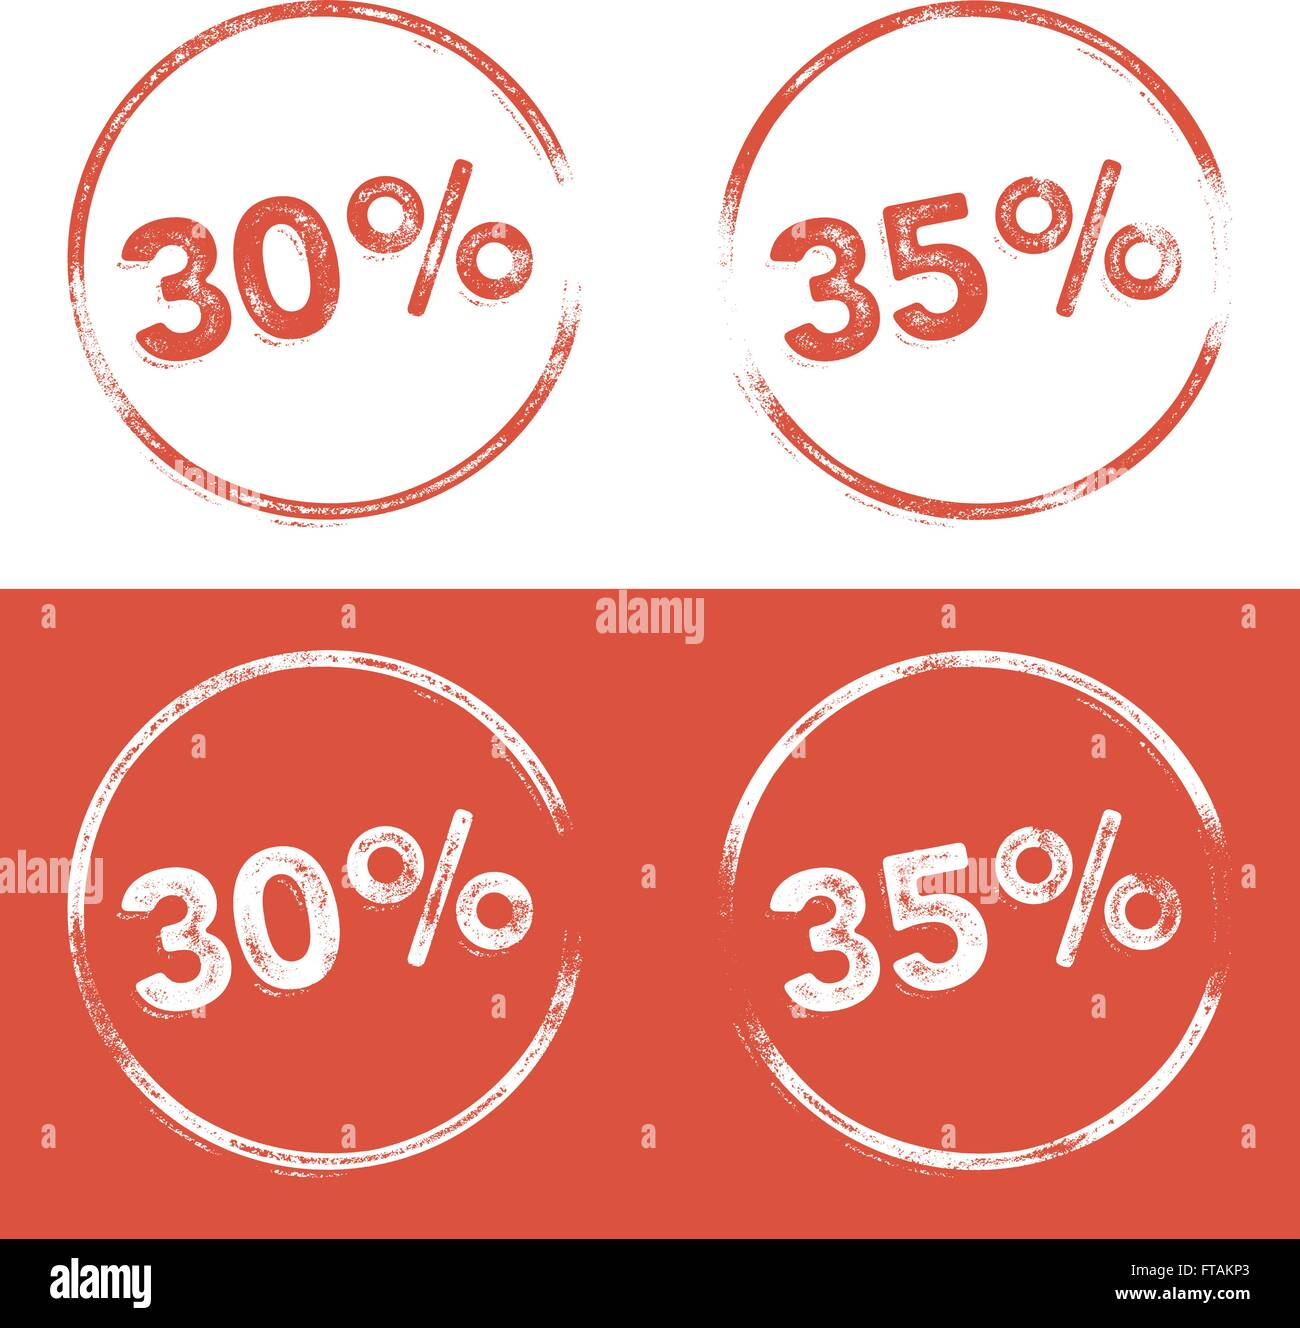 30 percent and 35 percent stamp print illustration in a letterpress, grunge look - Stock Vector